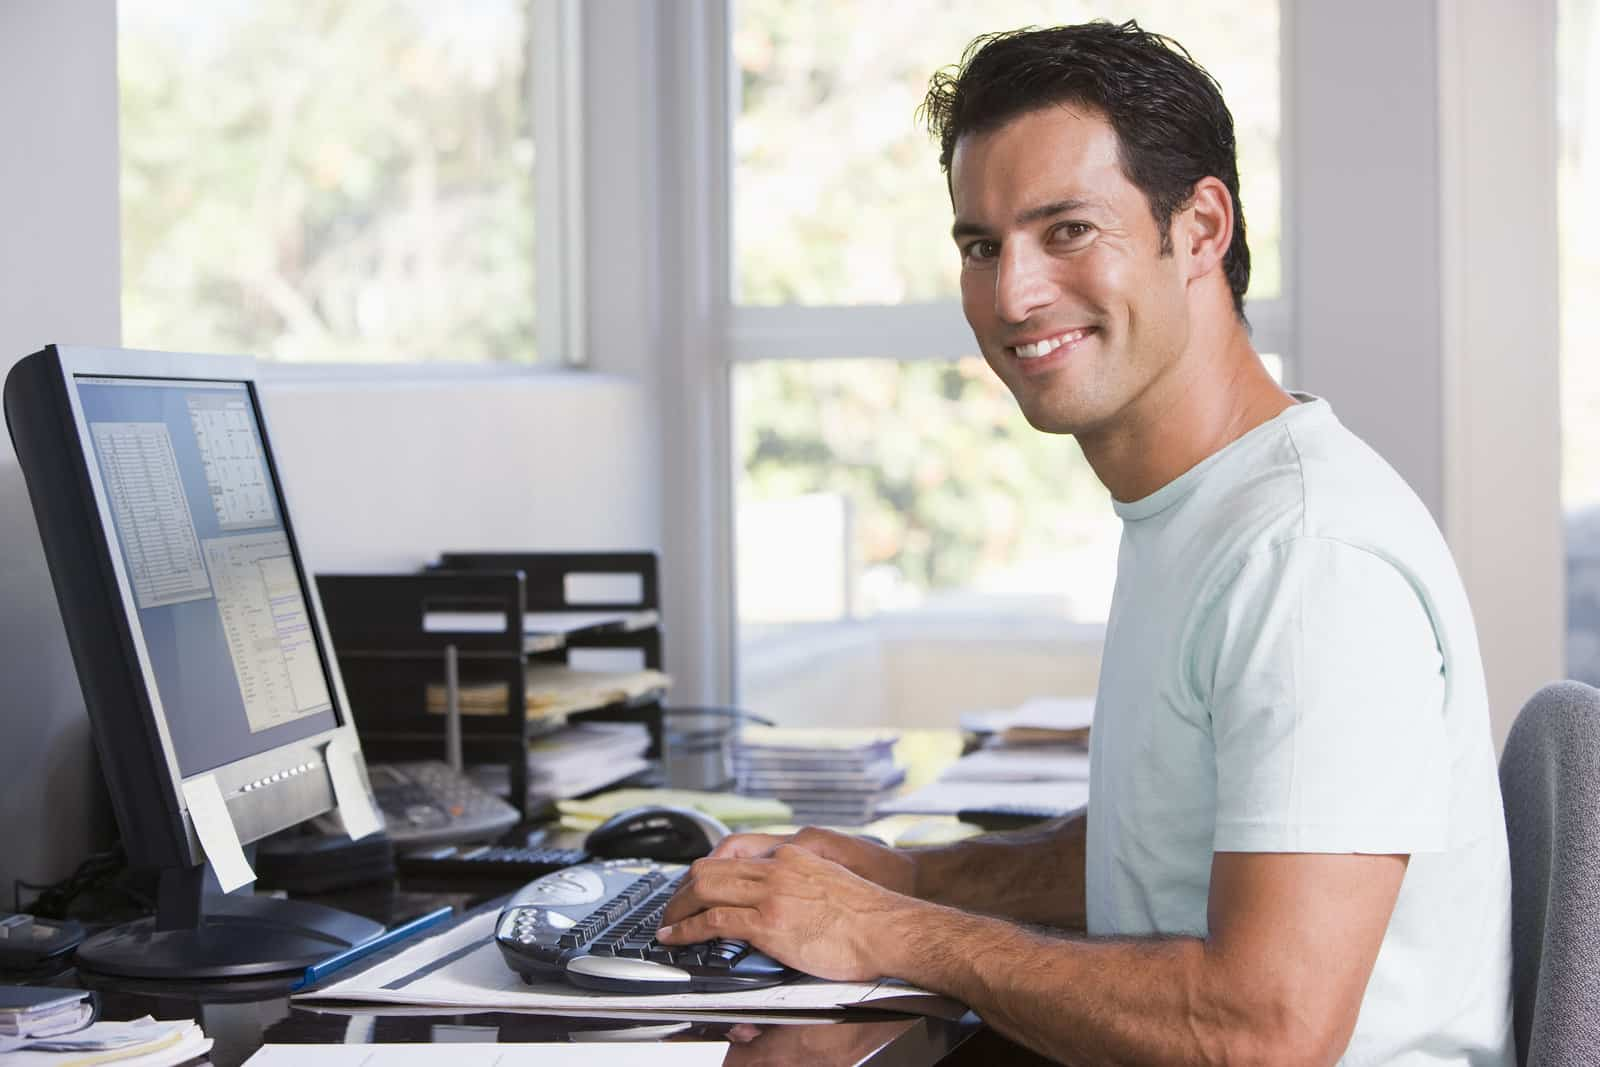 537497 man in home office using computer and smiling